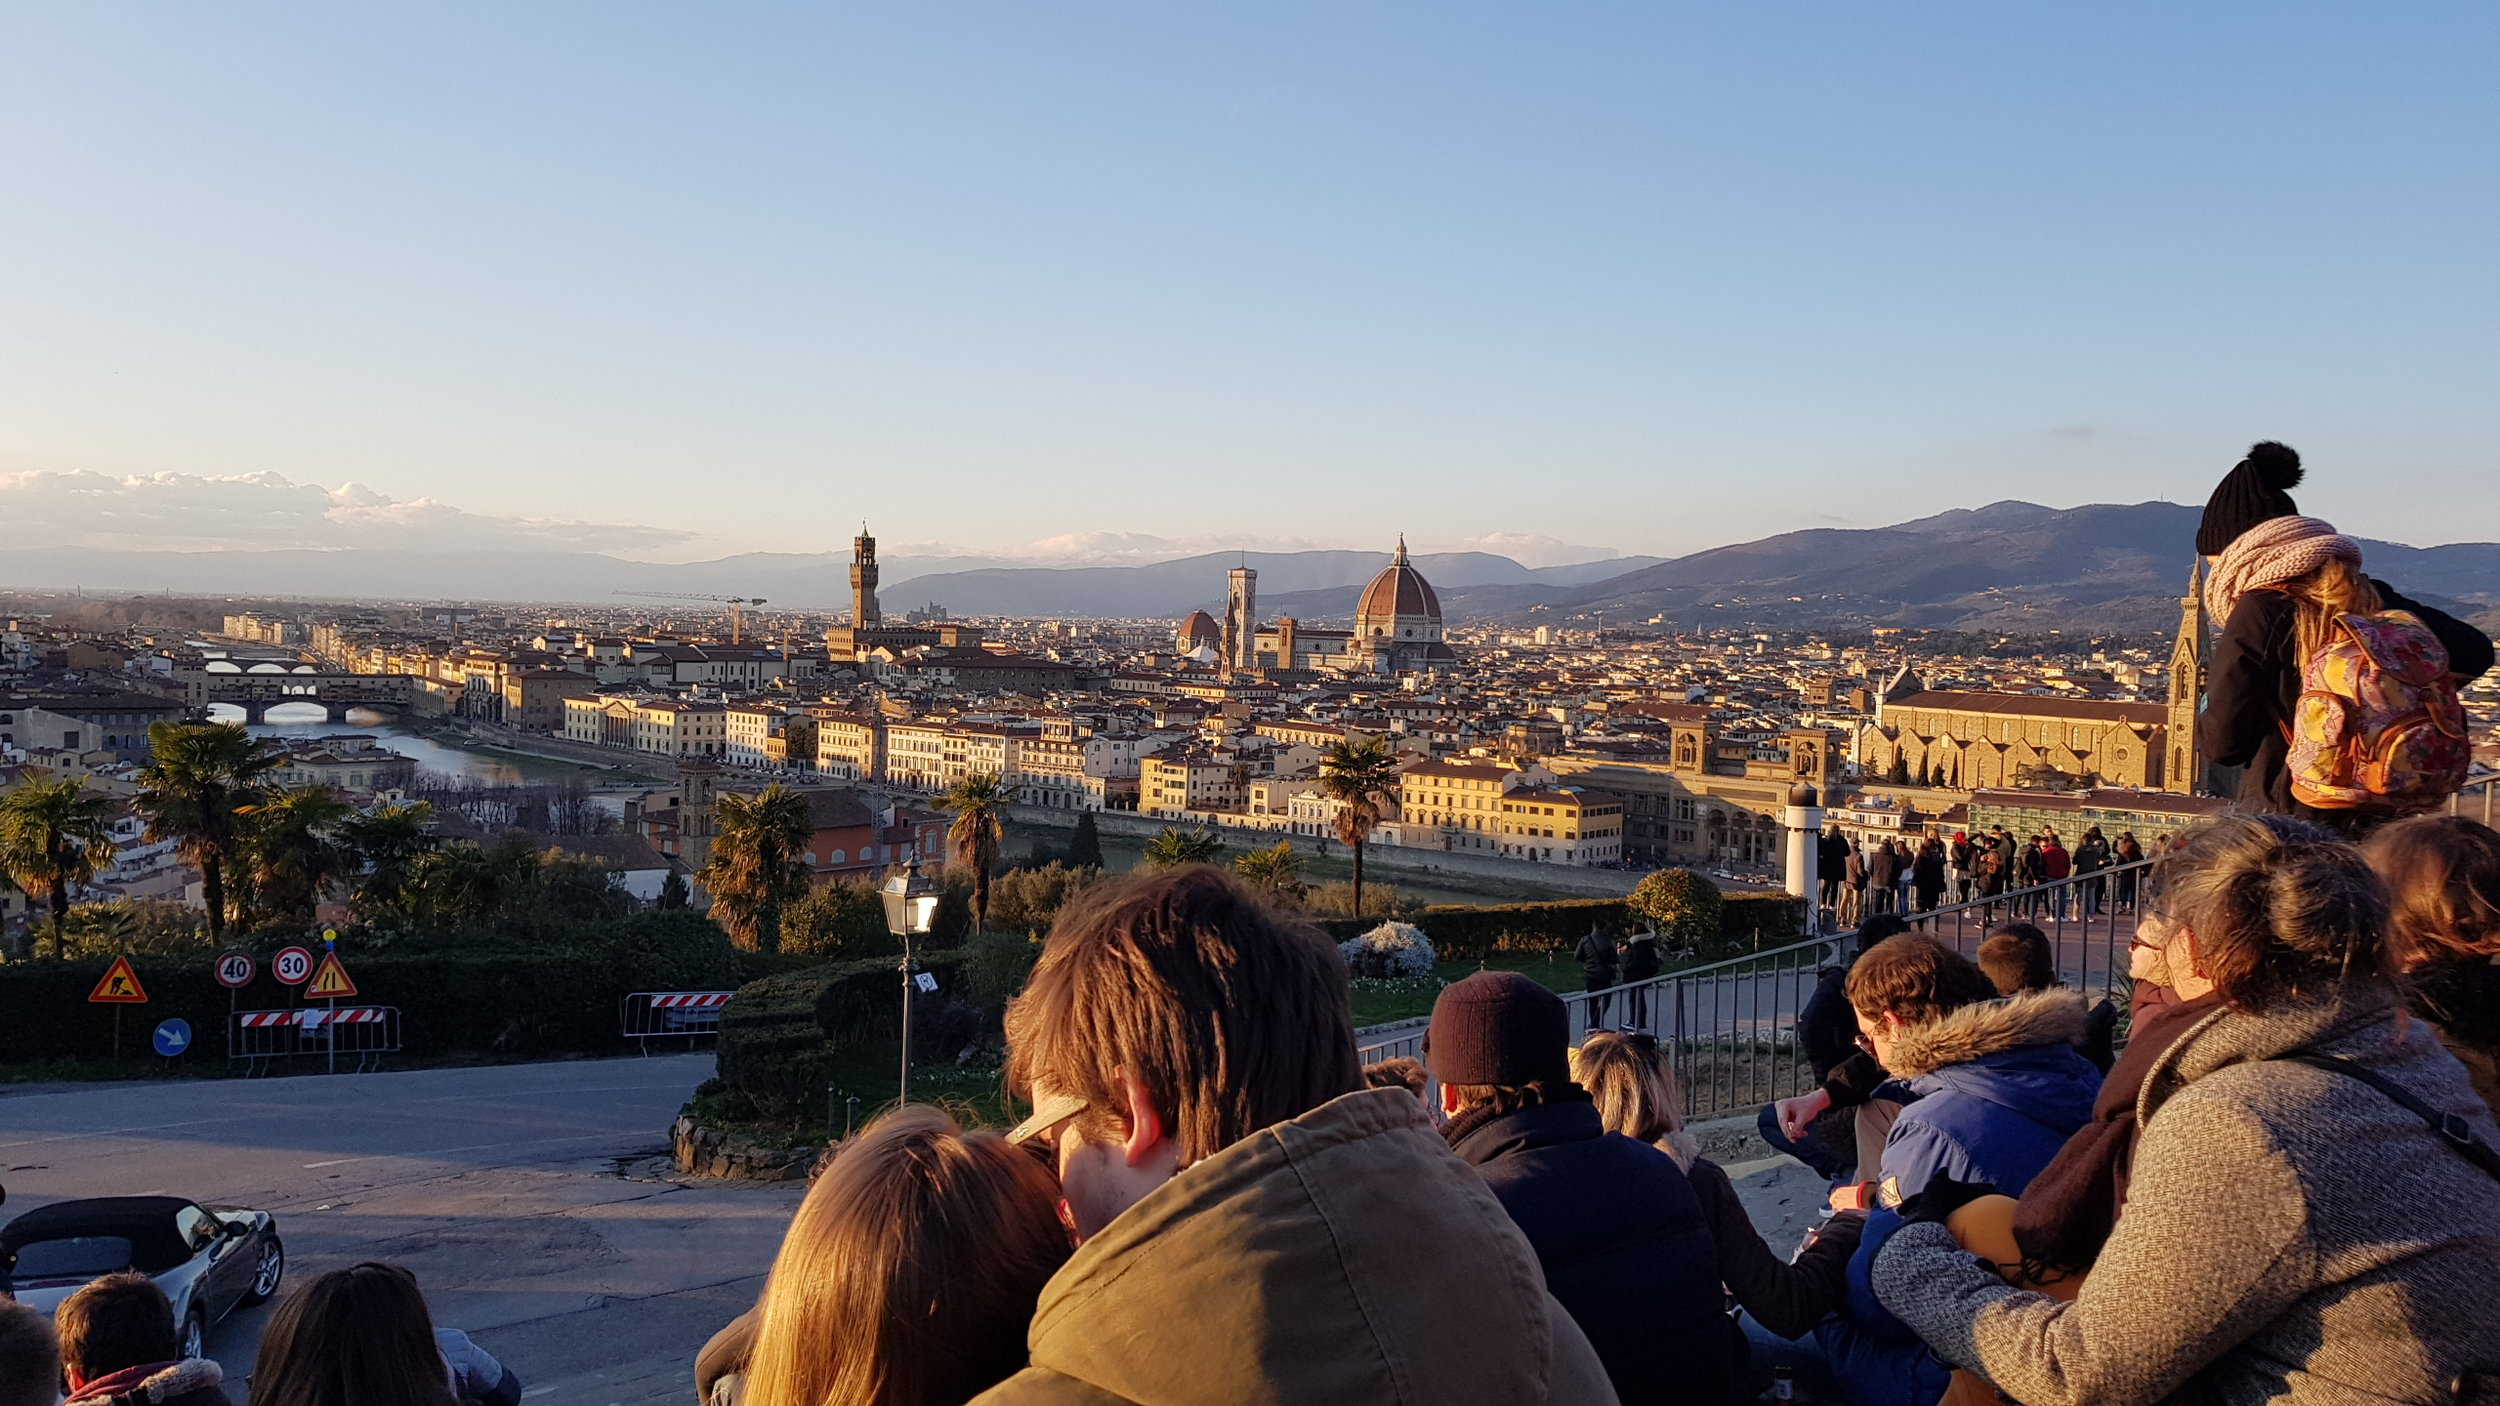 We walked up to the Piazzale Michaelangelo to freeze a little while watching the sun set over one of the most fantastic views of the whole city. I've gotta give props to the vendors up there - their wine was incredibly reasonably priced for being the only cart selling wine. And how can you not want to enjoy this view with a little wine?